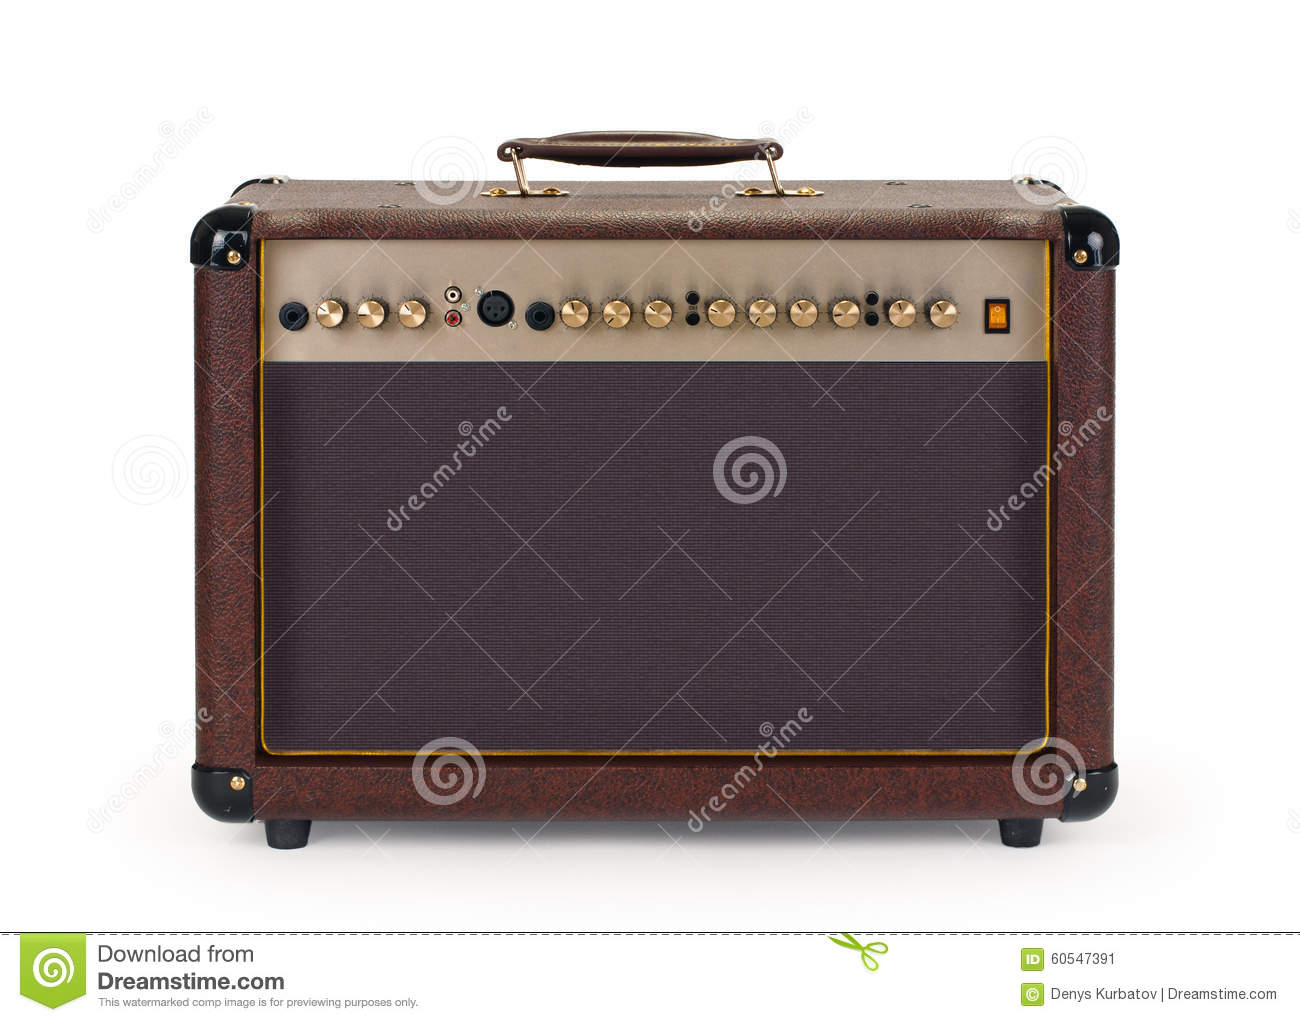 guitar combo amplifier stock image image of guitar classic 60547391. Black Bedroom Furniture Sets. Home Design Ideas